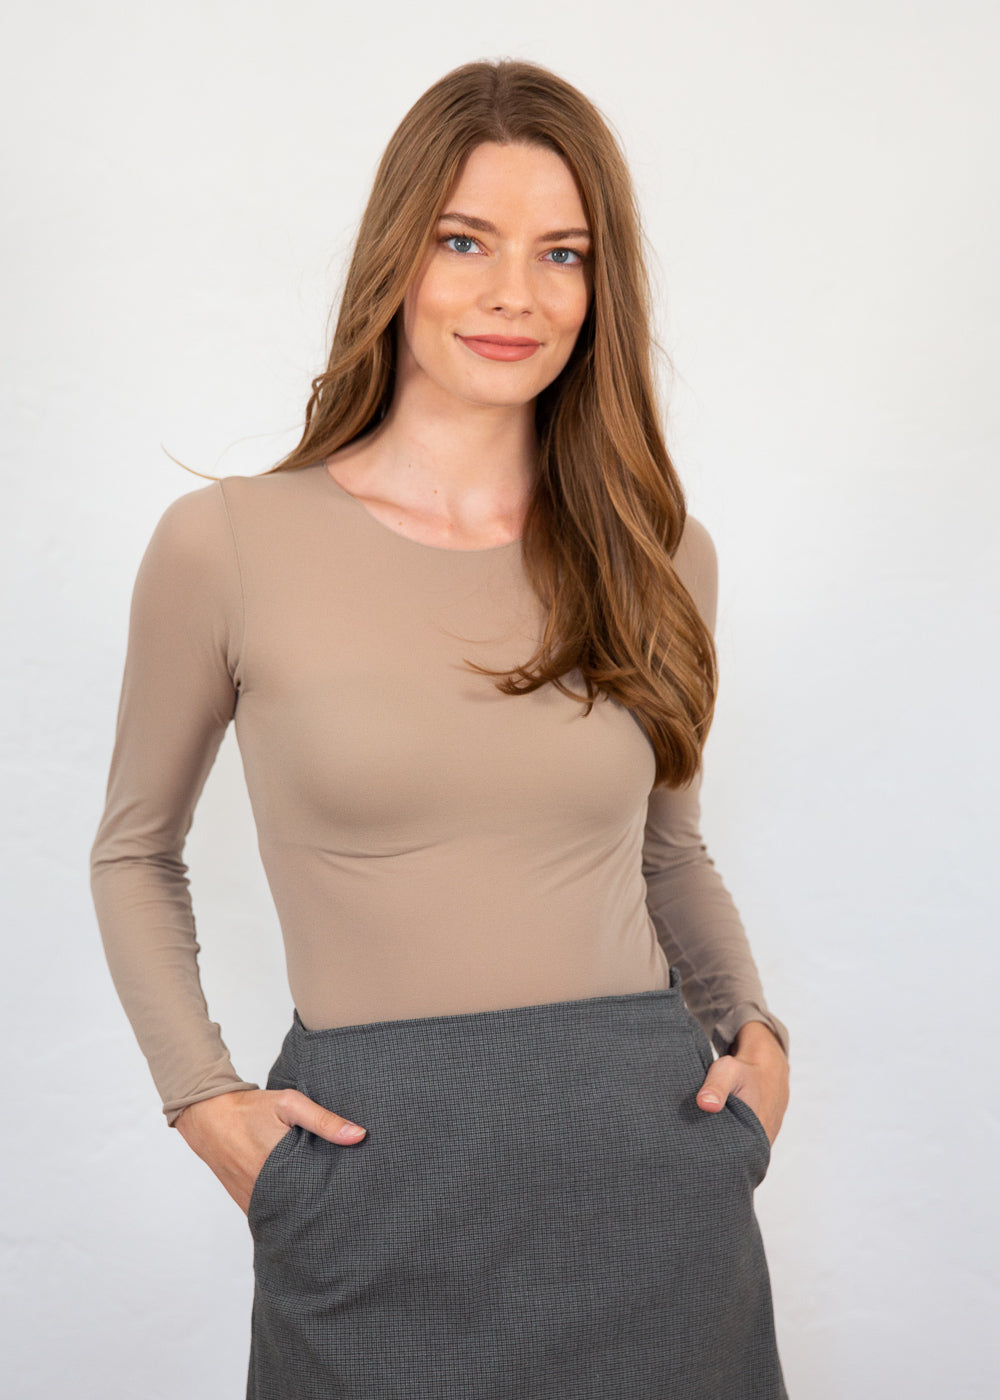 Solid Raw Edge Second Skin Top - NEW COLORS!